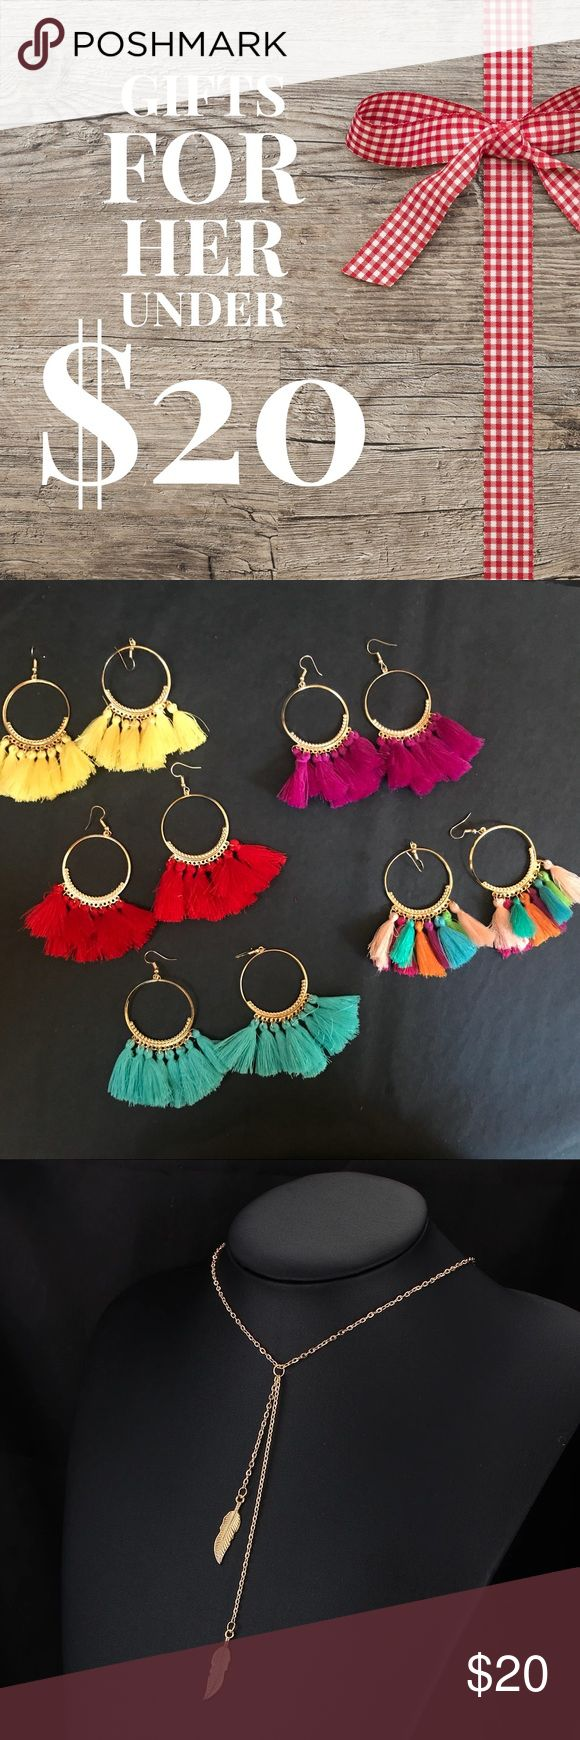 Necklaces & earrings for under $20! Great gifts! From trendy tassel earrings, to delicate necklaces in silver, gold and other colors, all priced under $20! Beautifully gift wrapped. Choose from over a dozen styles and finishes. Buy two or more and get an additional 20% off. Perfect gift for mom, daughter, wife, sister, girlfriend! Jewelry